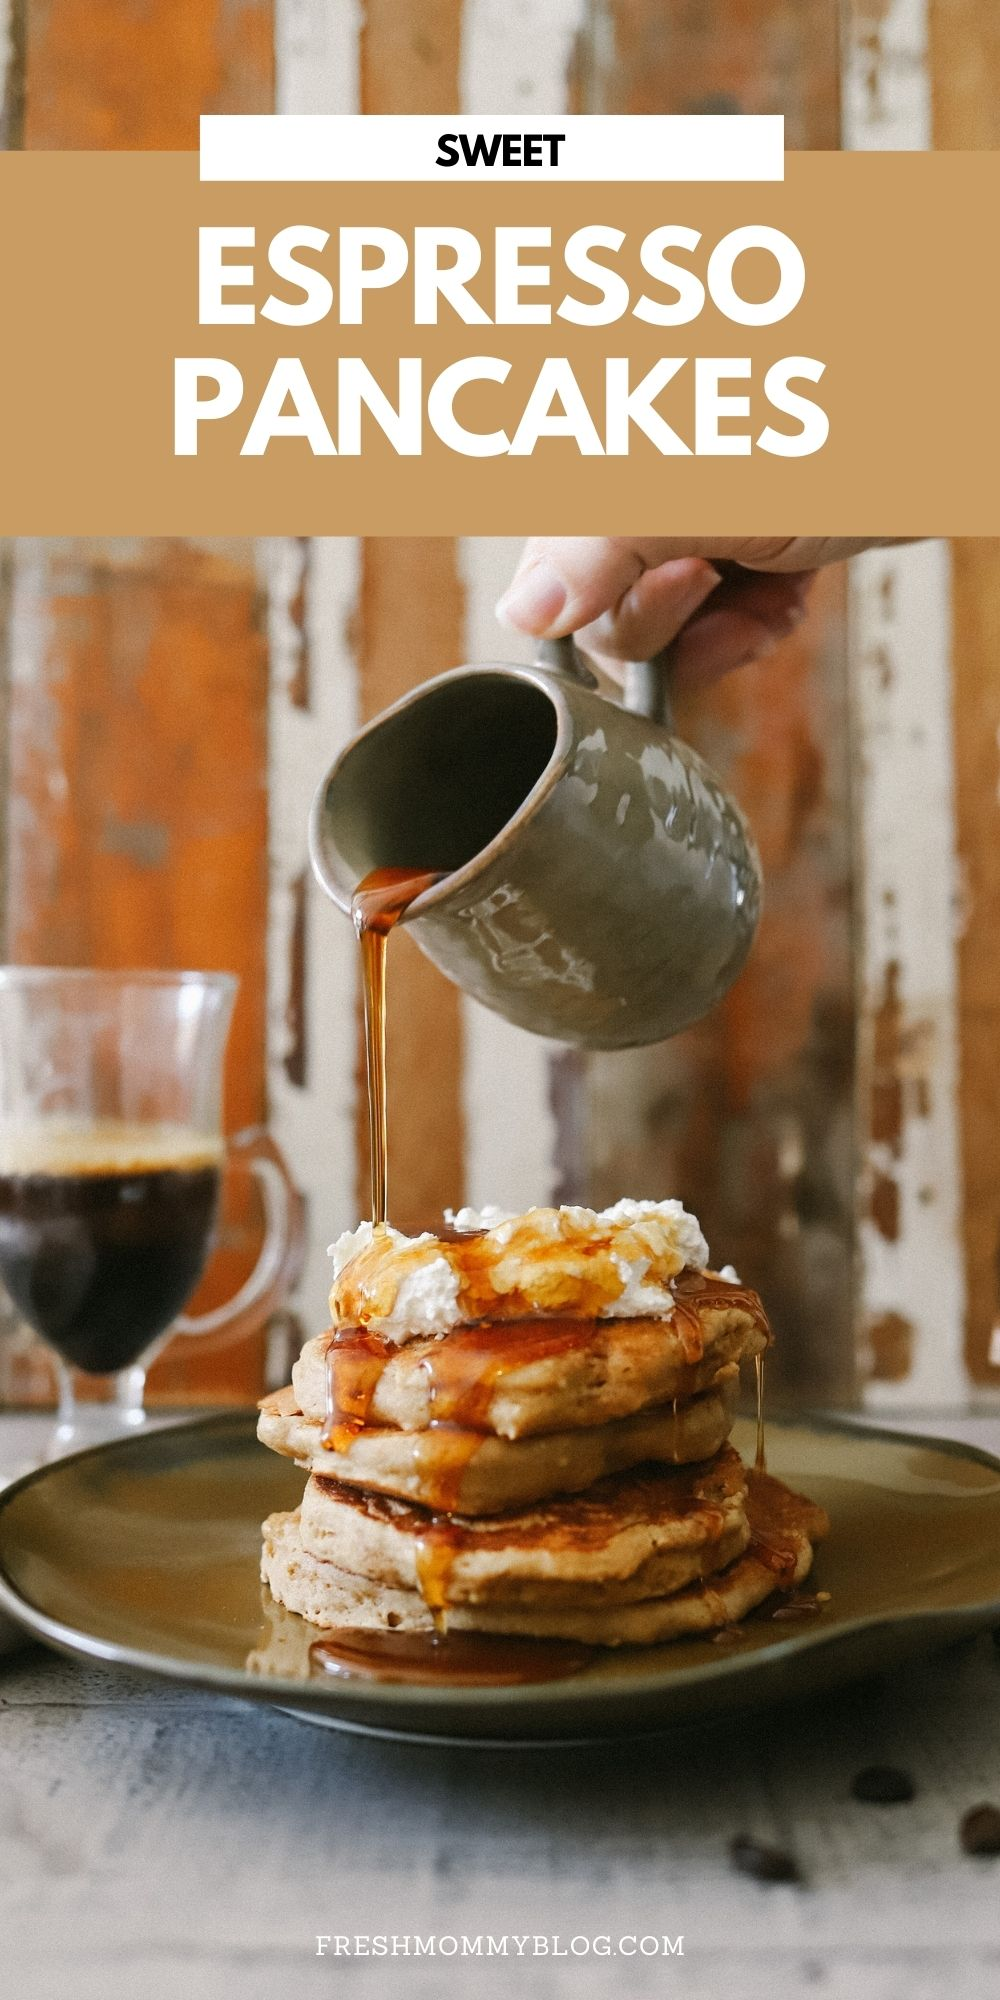 Mouthwatering Coffee Pancakes With Espresso and Vanilla Cream Whip | Coffee Pancakes by popular Florida lifestyle blog, Fresh Mommy Blog: image of syrup being poured onto a stack of coffee pancakes with whipped cream.